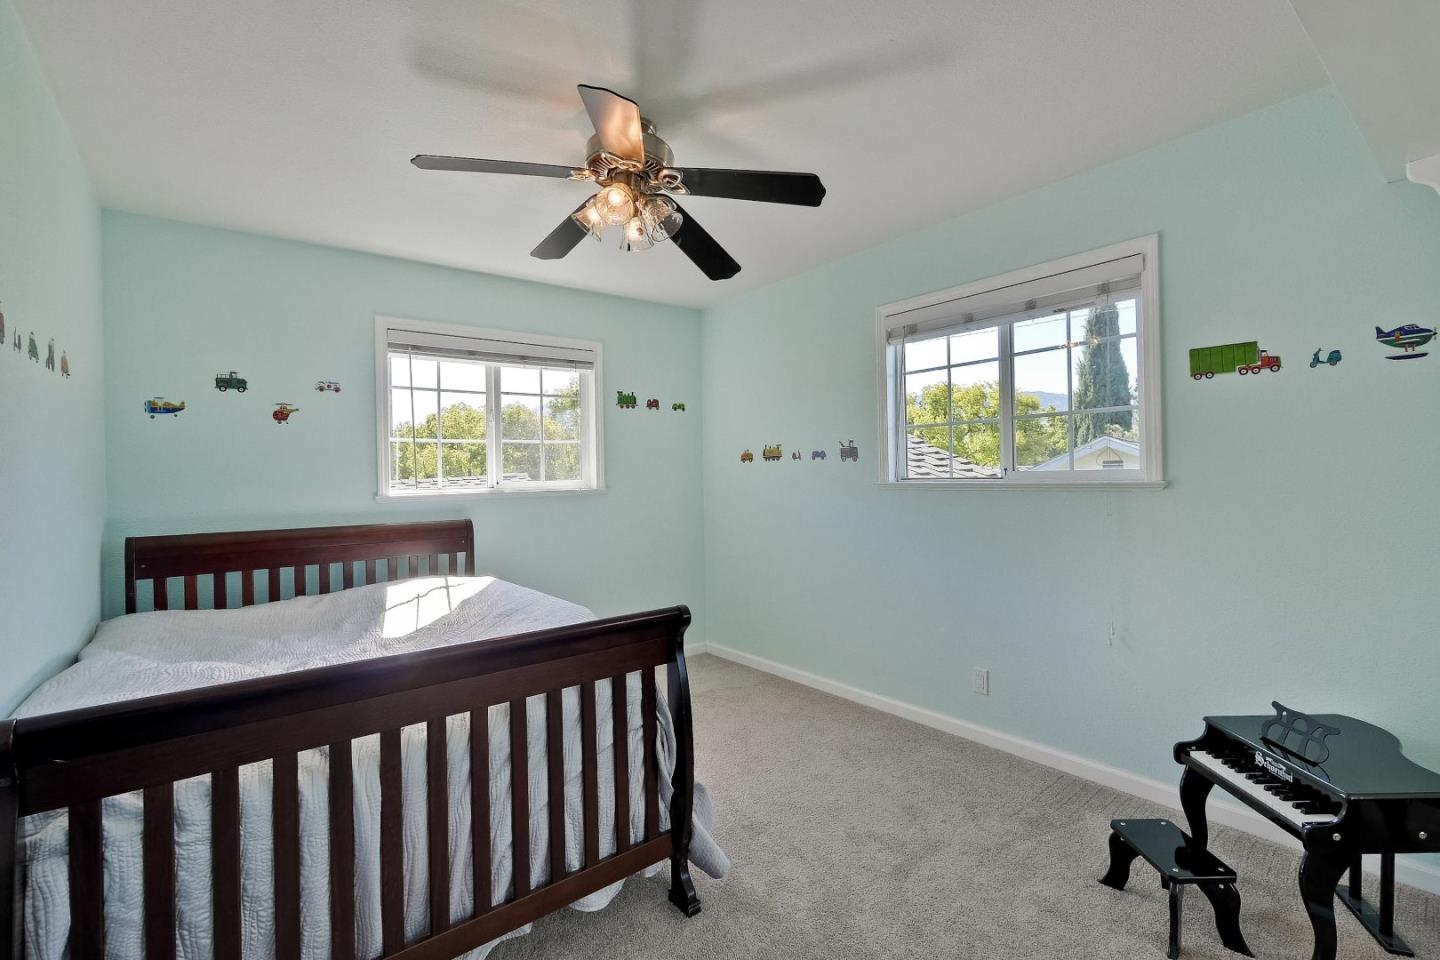 Additional photo for property listing at 1393 Antwerp Ln  SAN JOSE, CALIFORNIA 95118